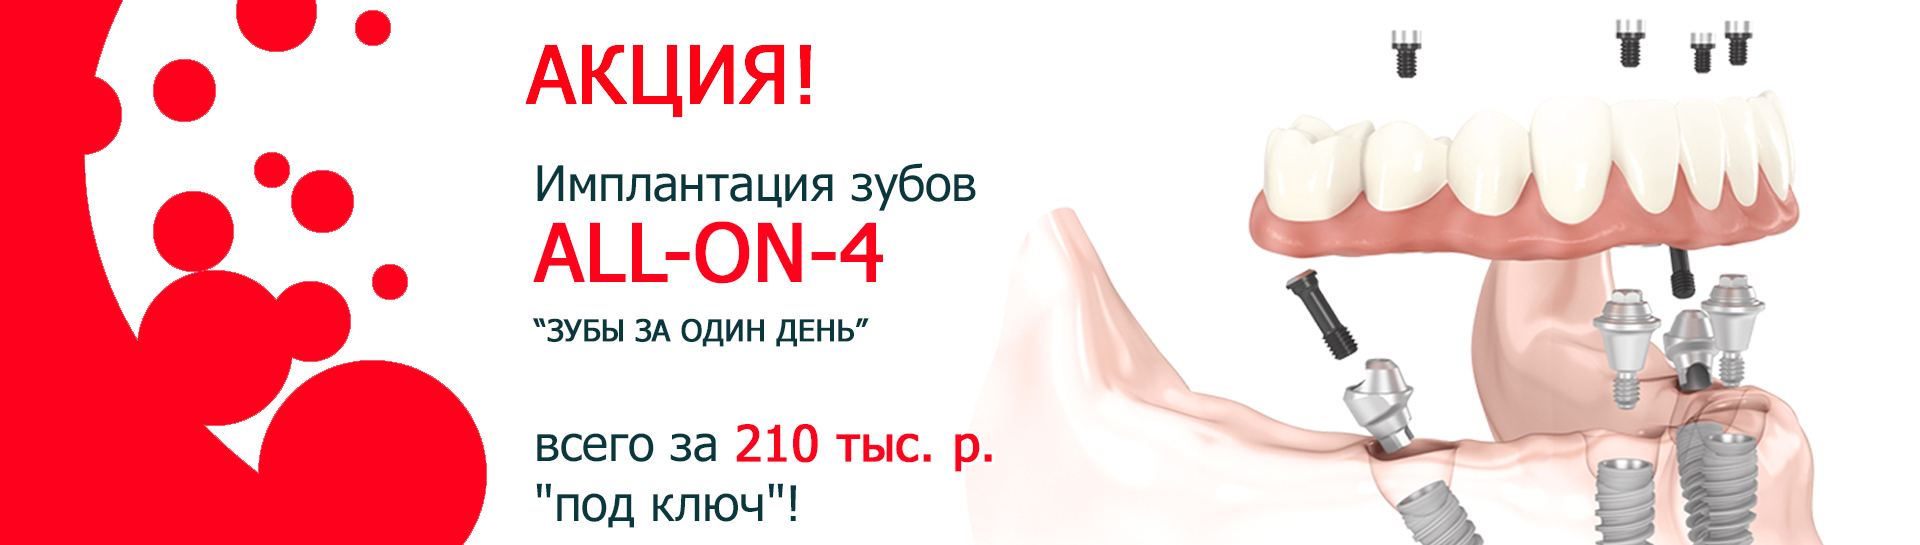 https://denta-maryino.ru/wp-content/uploads/All-on-4_slider.jpg 1x, https://denta-maryino.ru/wp-content/cache/thumb/07/6f7b1b131d1d507_1320x545.jpg 1320w